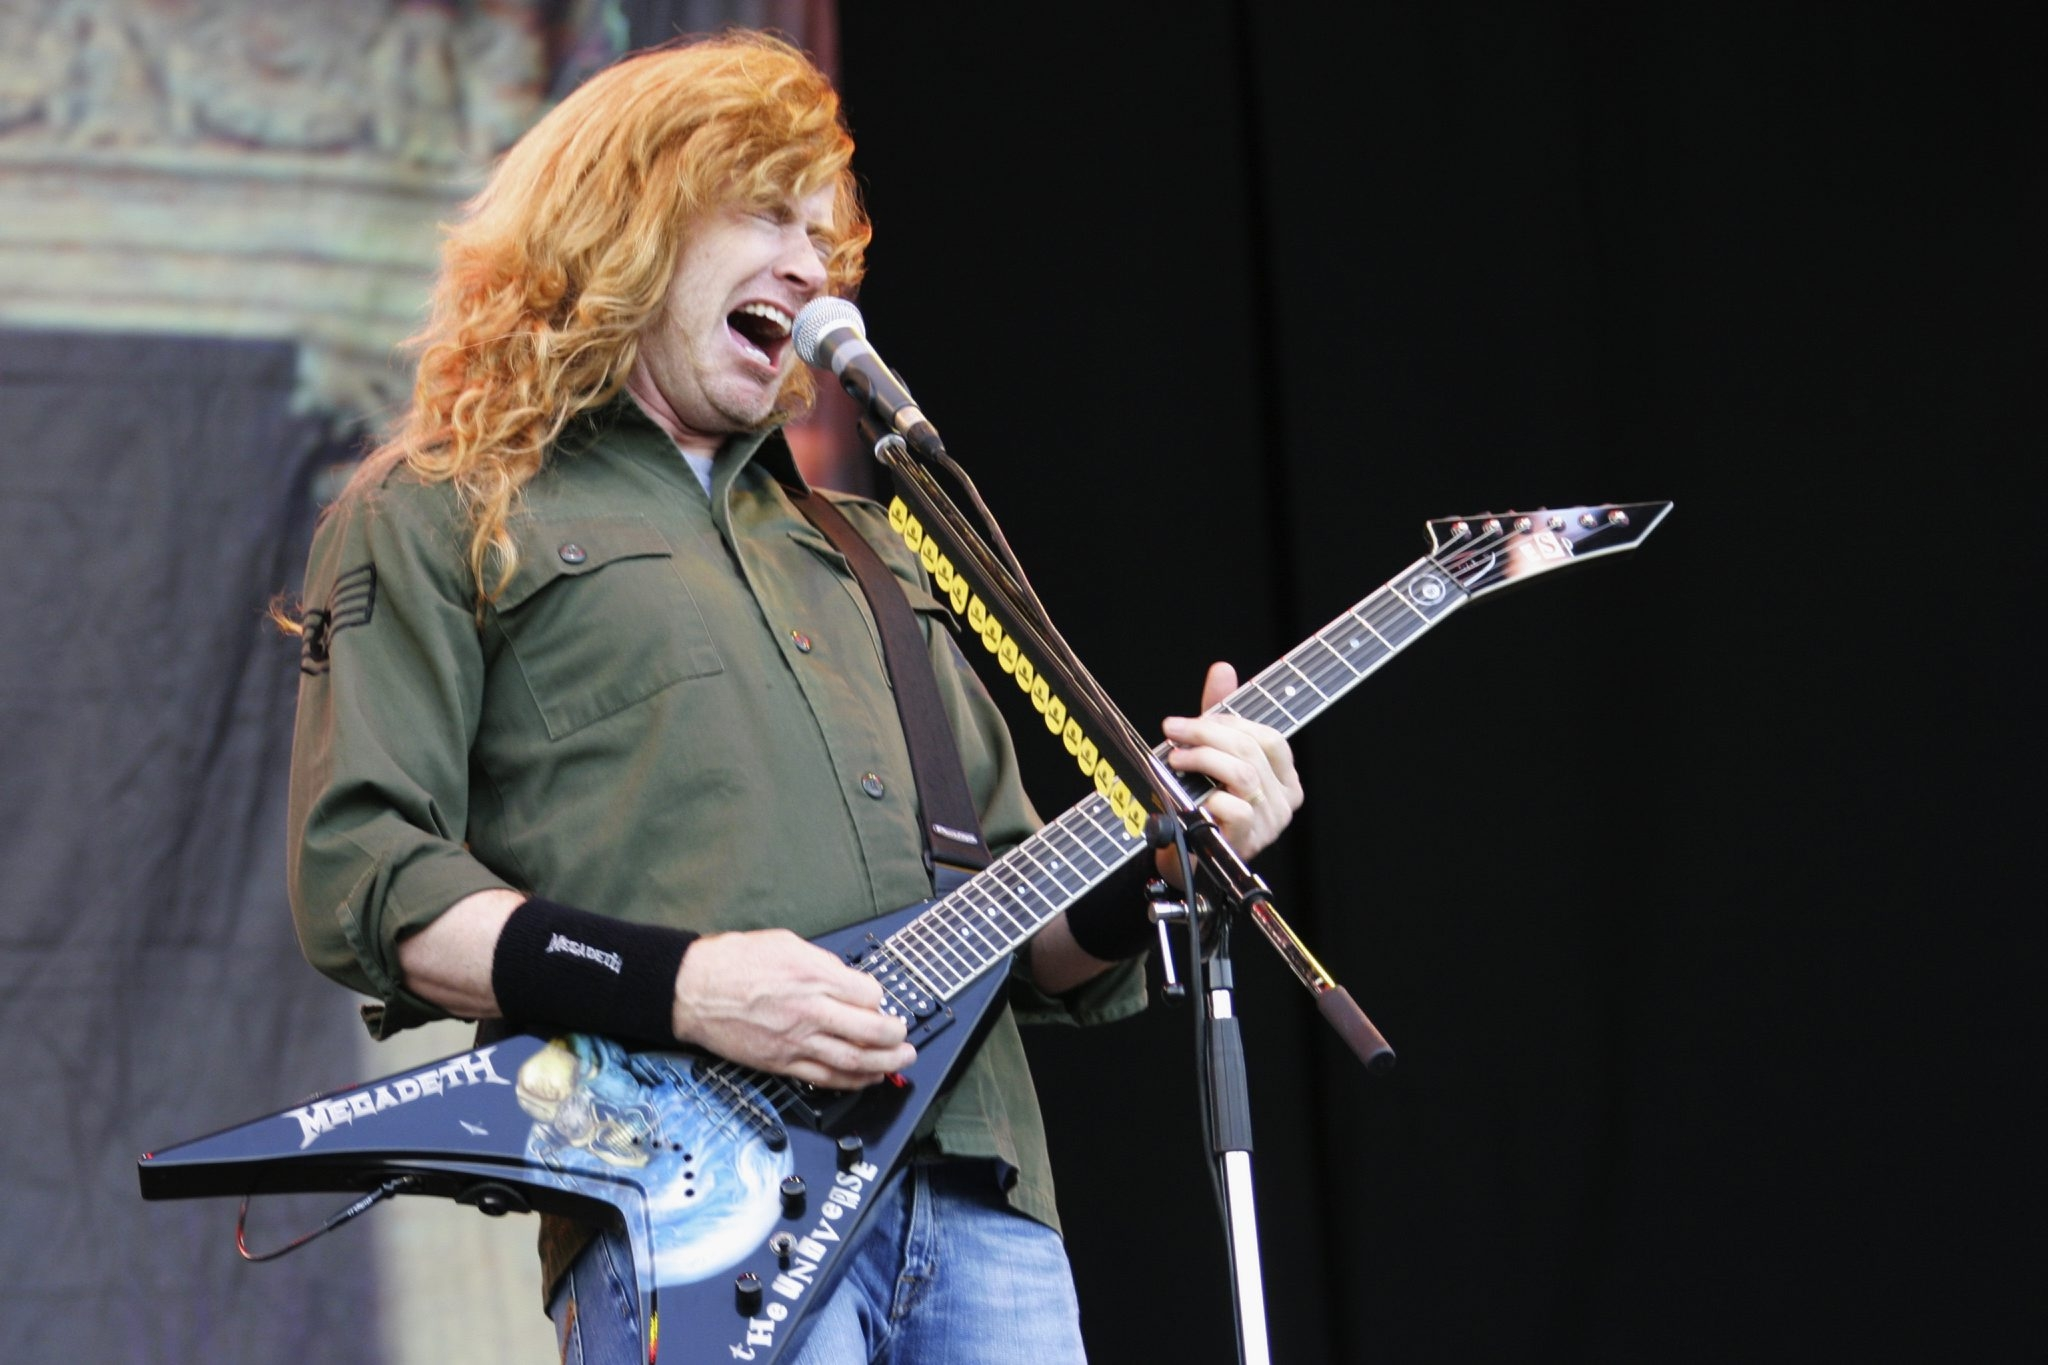 Dave Mustaine and Megadeth perform March 15 at Town Ballroom. (Getty Images)